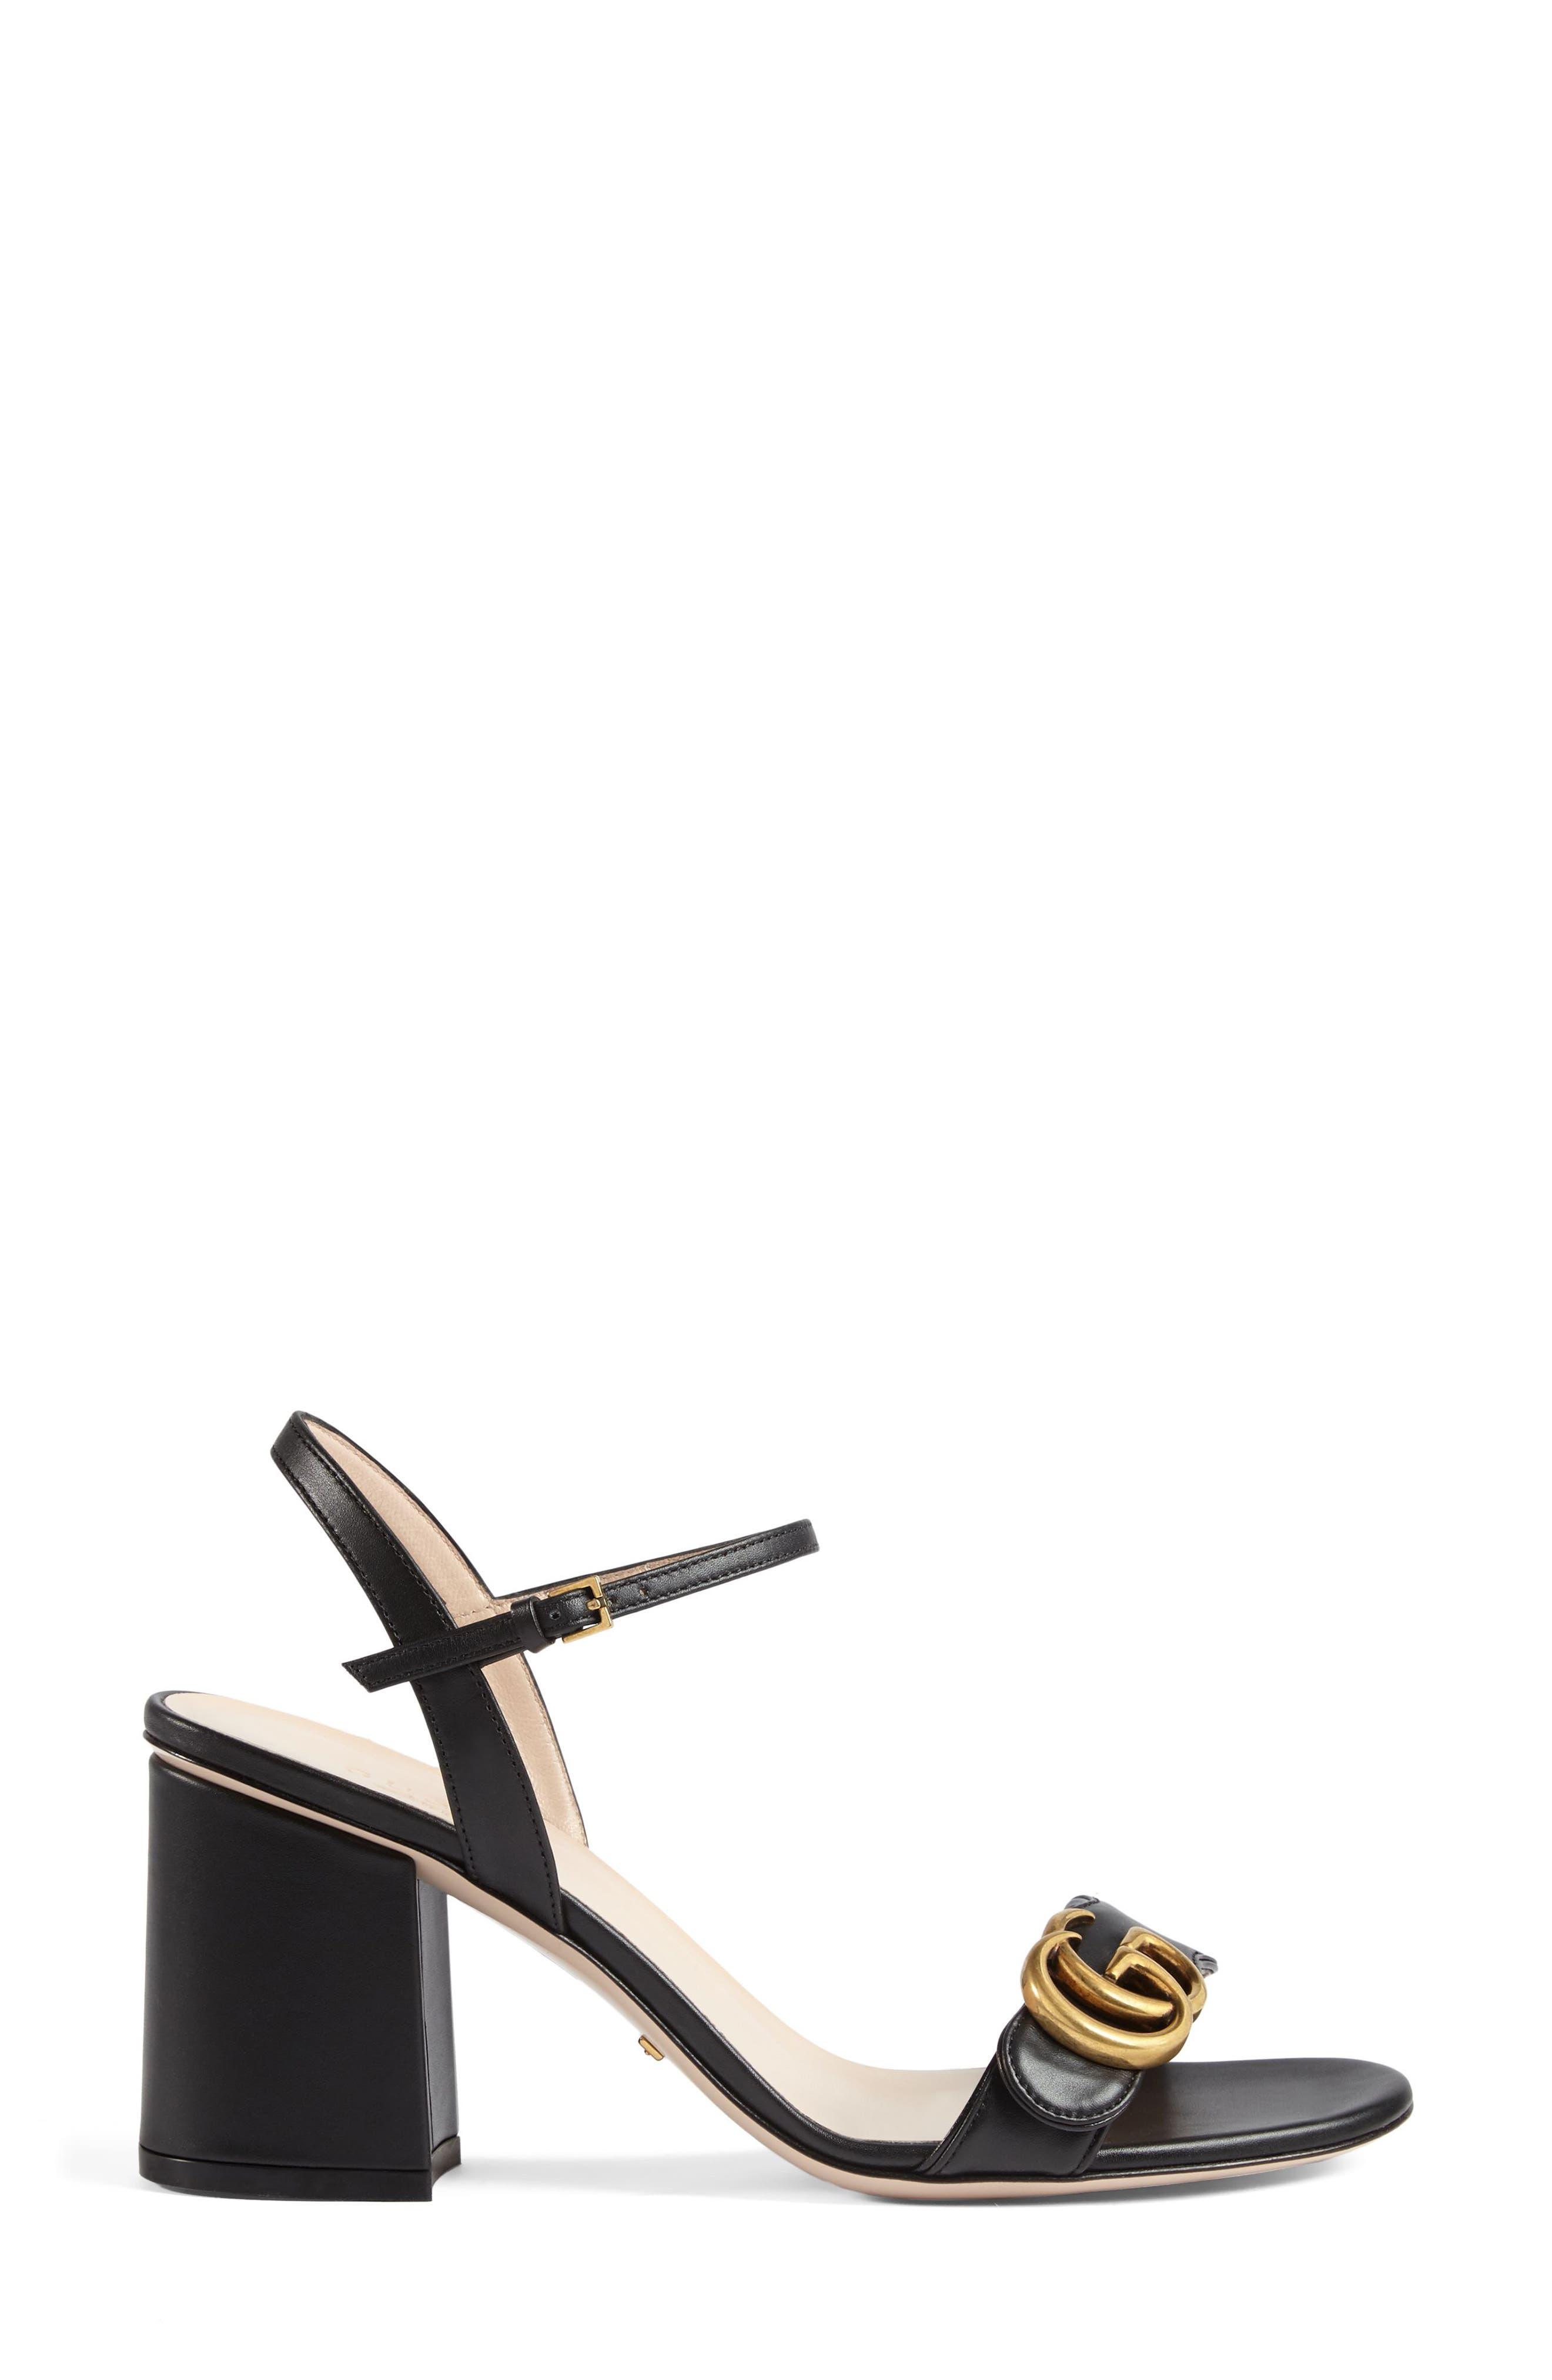 06ed8aed1c61 Women's Gucci Shoes | Nordstrom